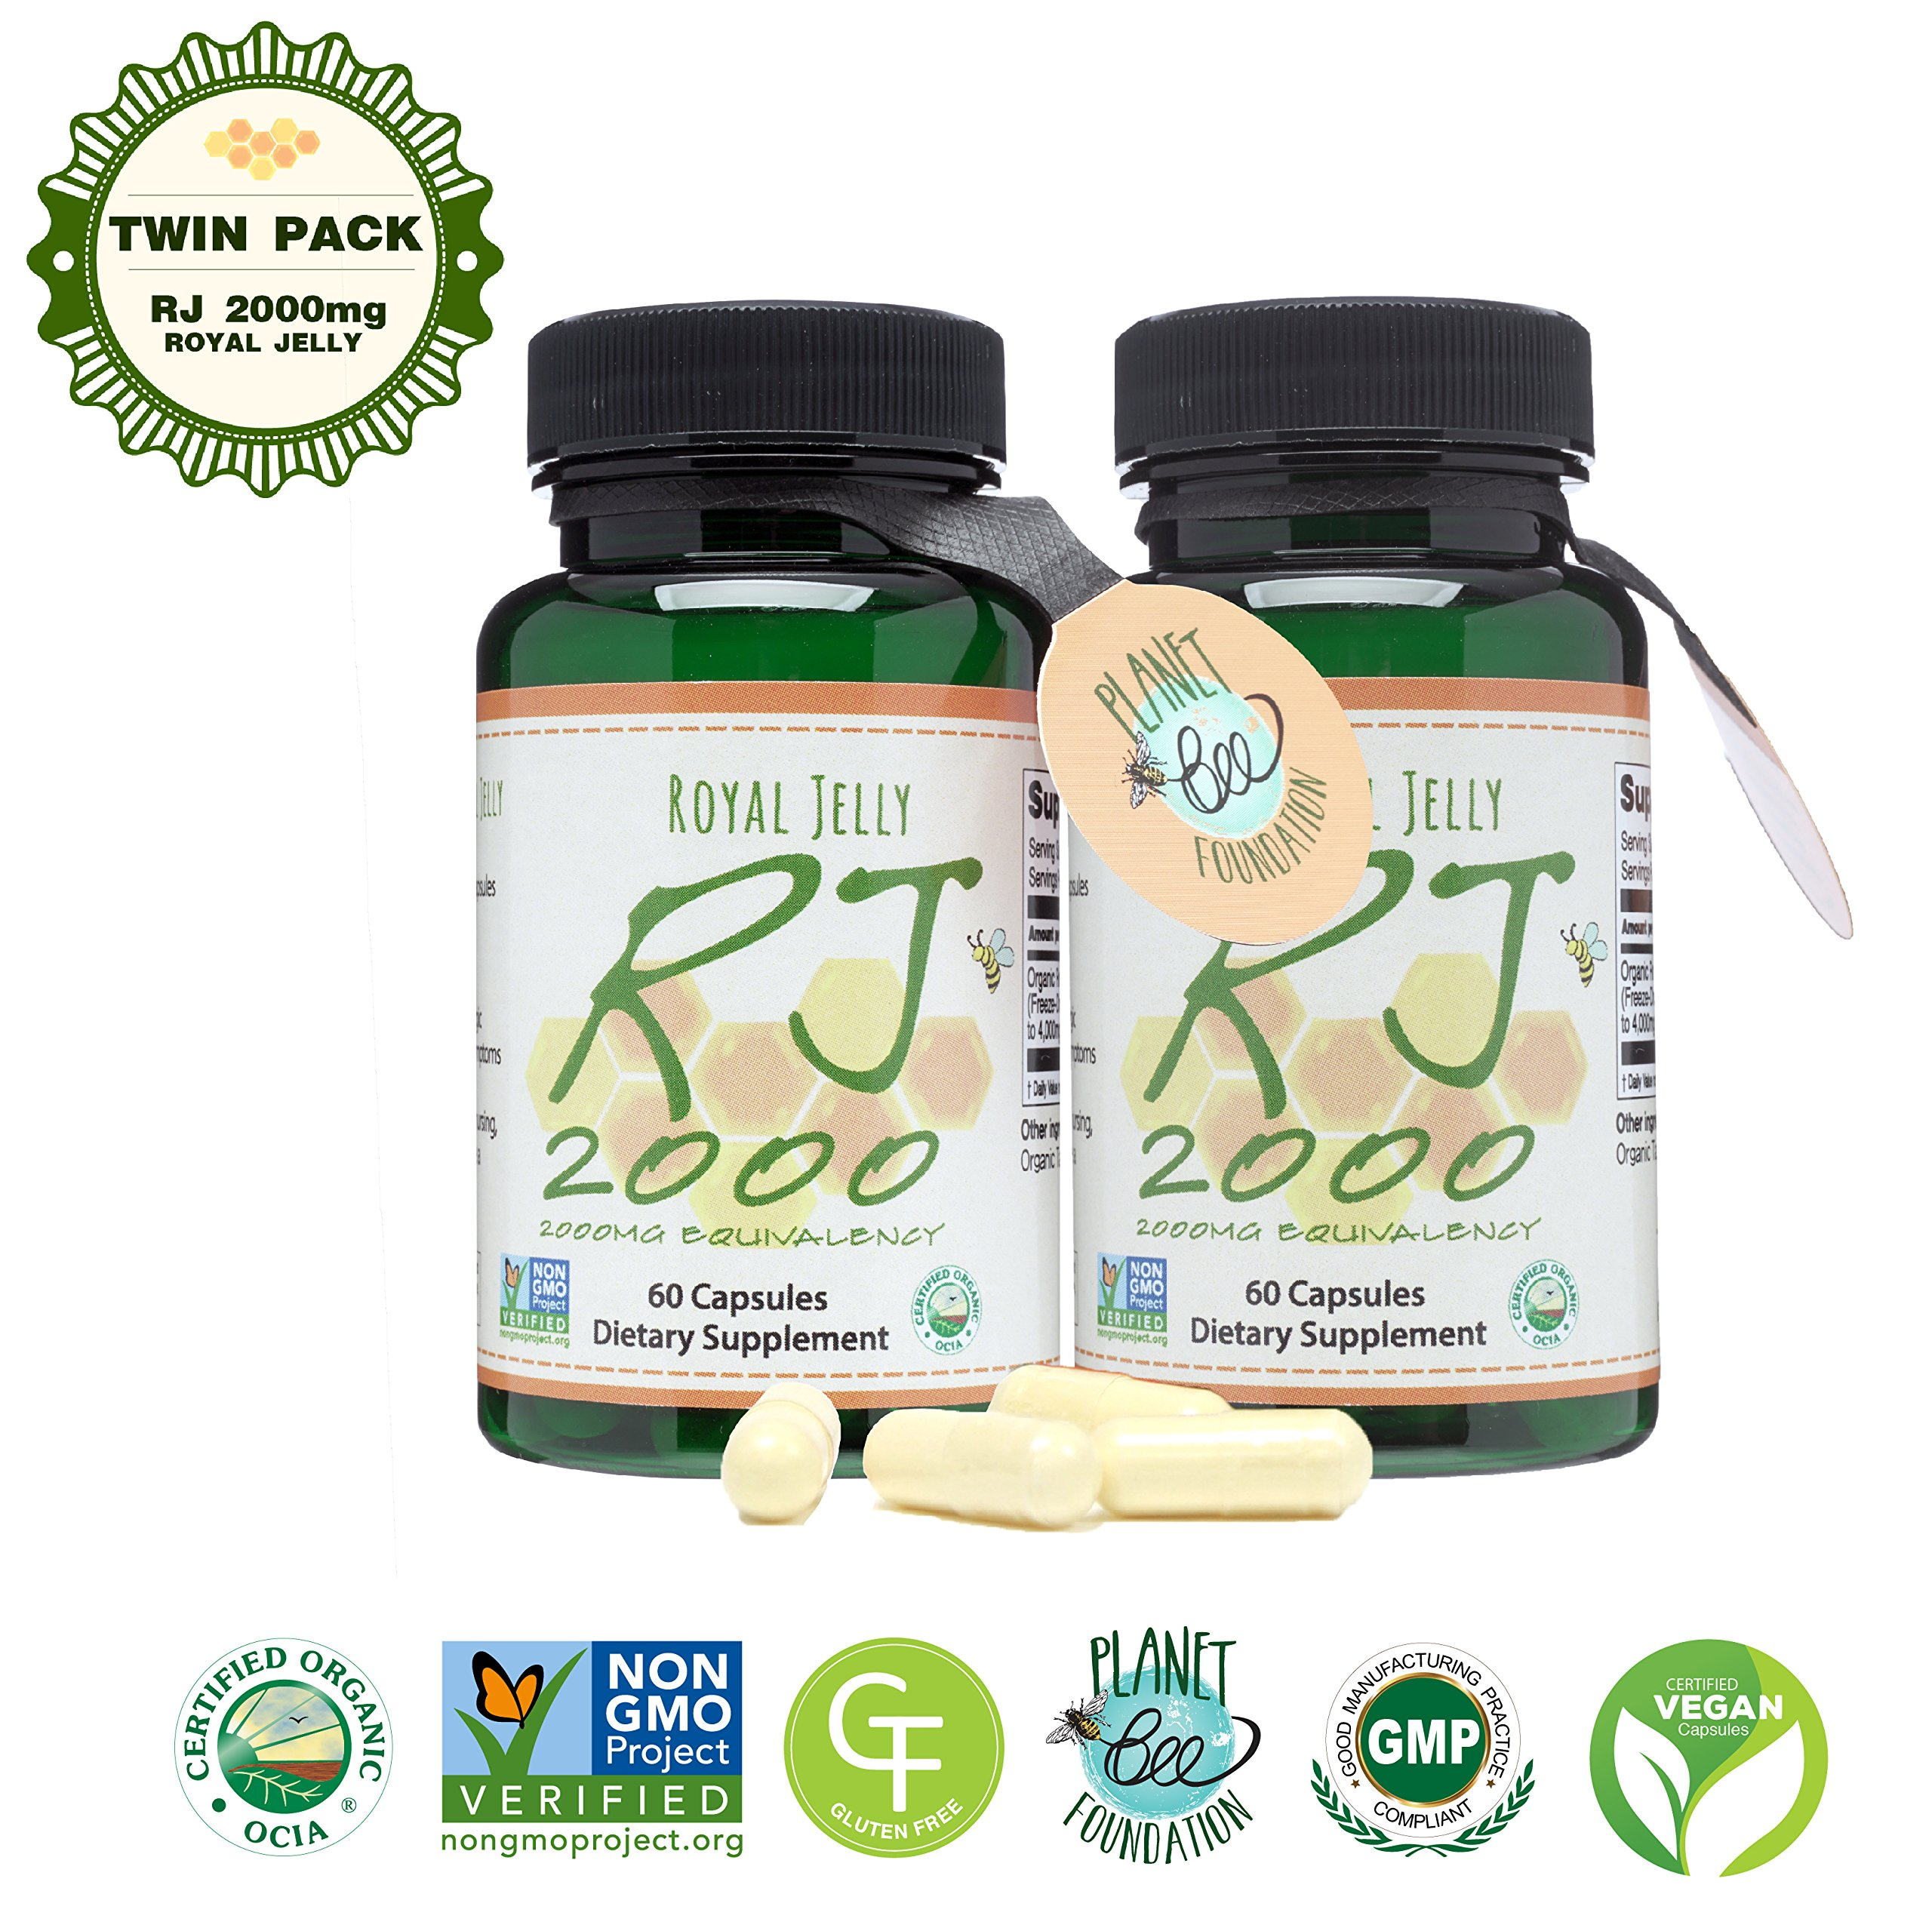 GREENBOW Royal Jelly 2000mg Equivalency – Non GMO Made with Organic Royal Jelly - One of the Most Nutrition Packed Diet Supplements – Certified Vegan Capsules (Twin Pack_2-60 Capsules) by Greenbow